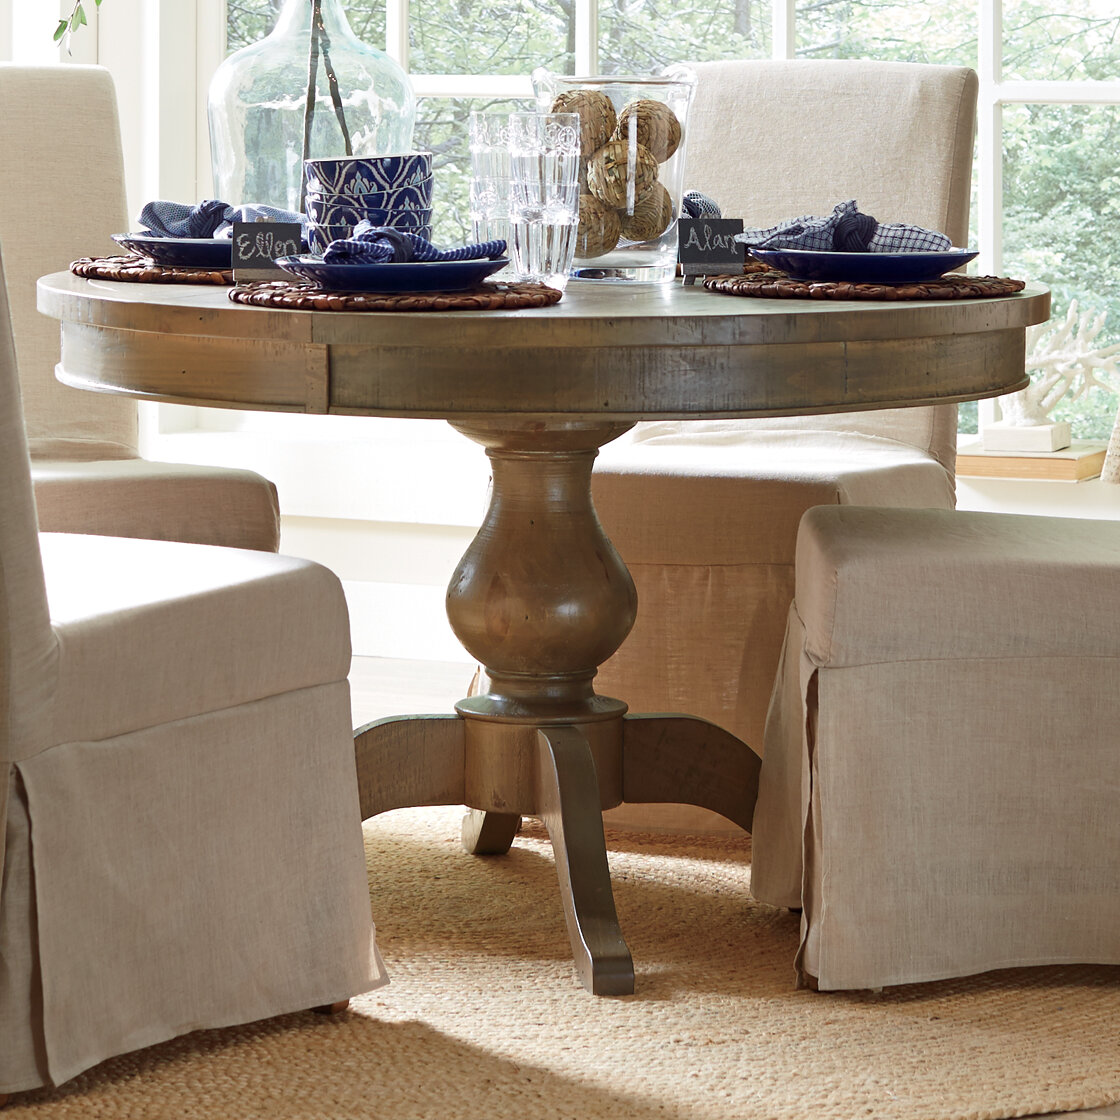 Dining Table In Kitchen Design